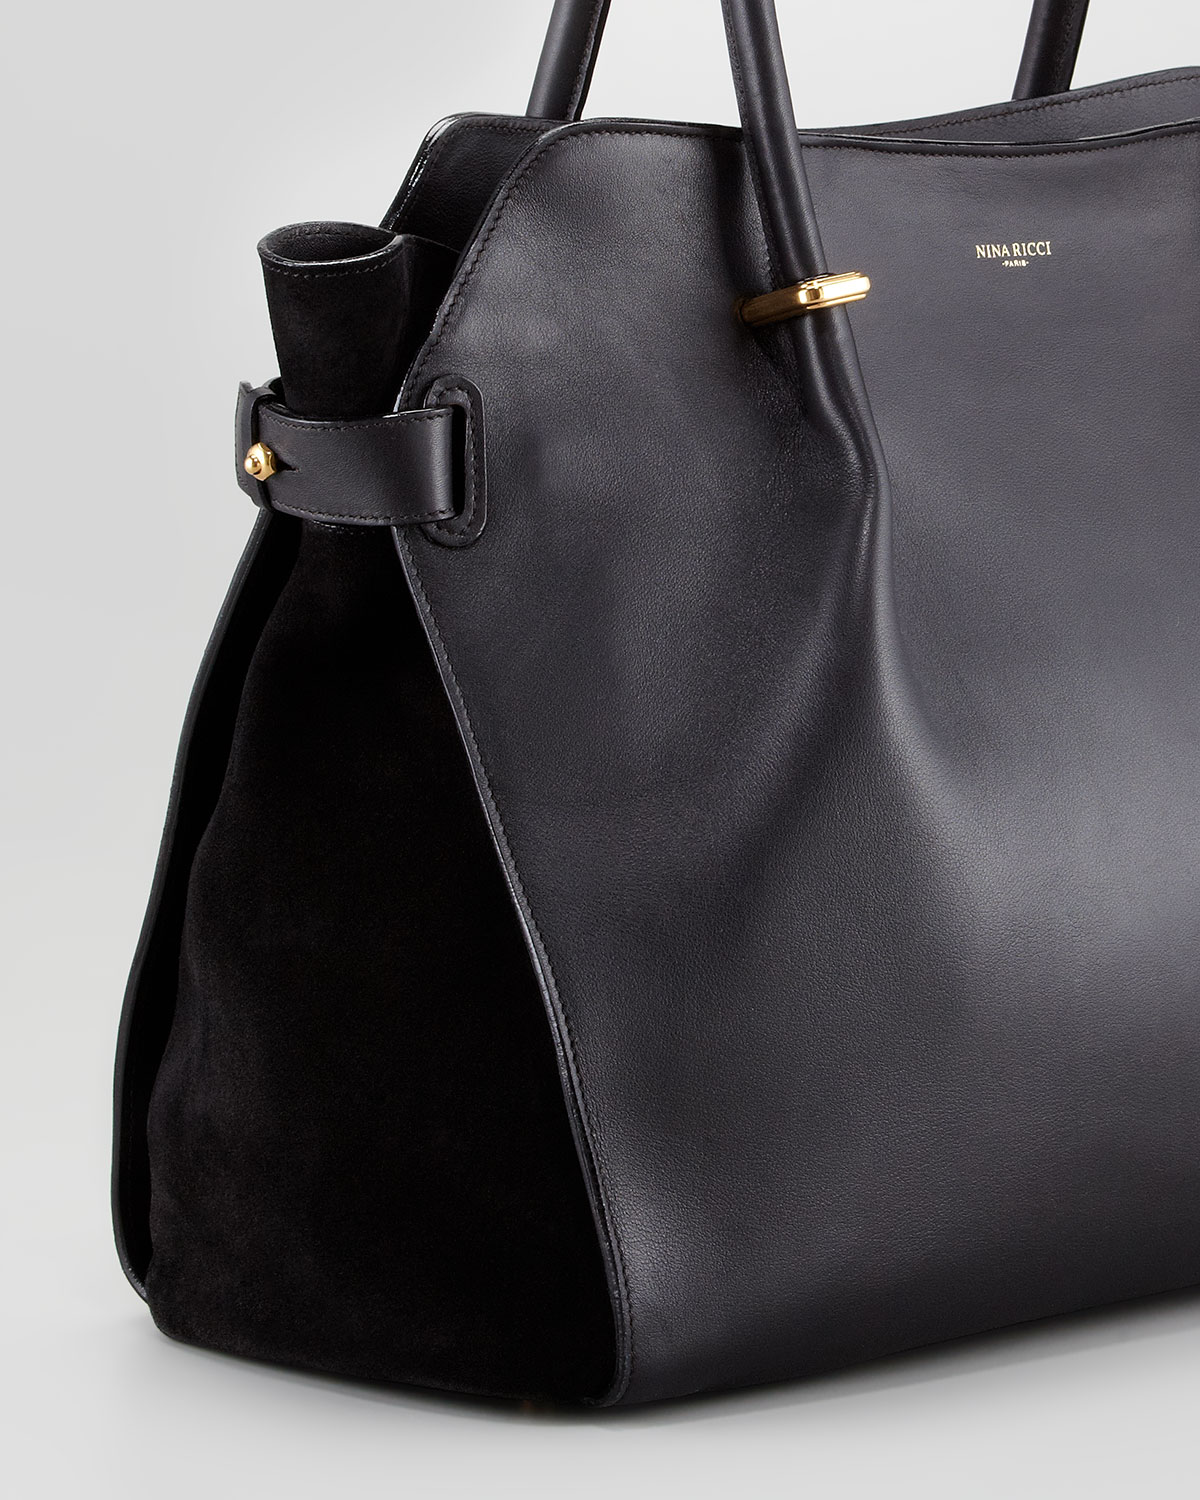 Lyst - Nina Ricci Marche Large Leather Tote Bag Black in Black b1d887bd081ce